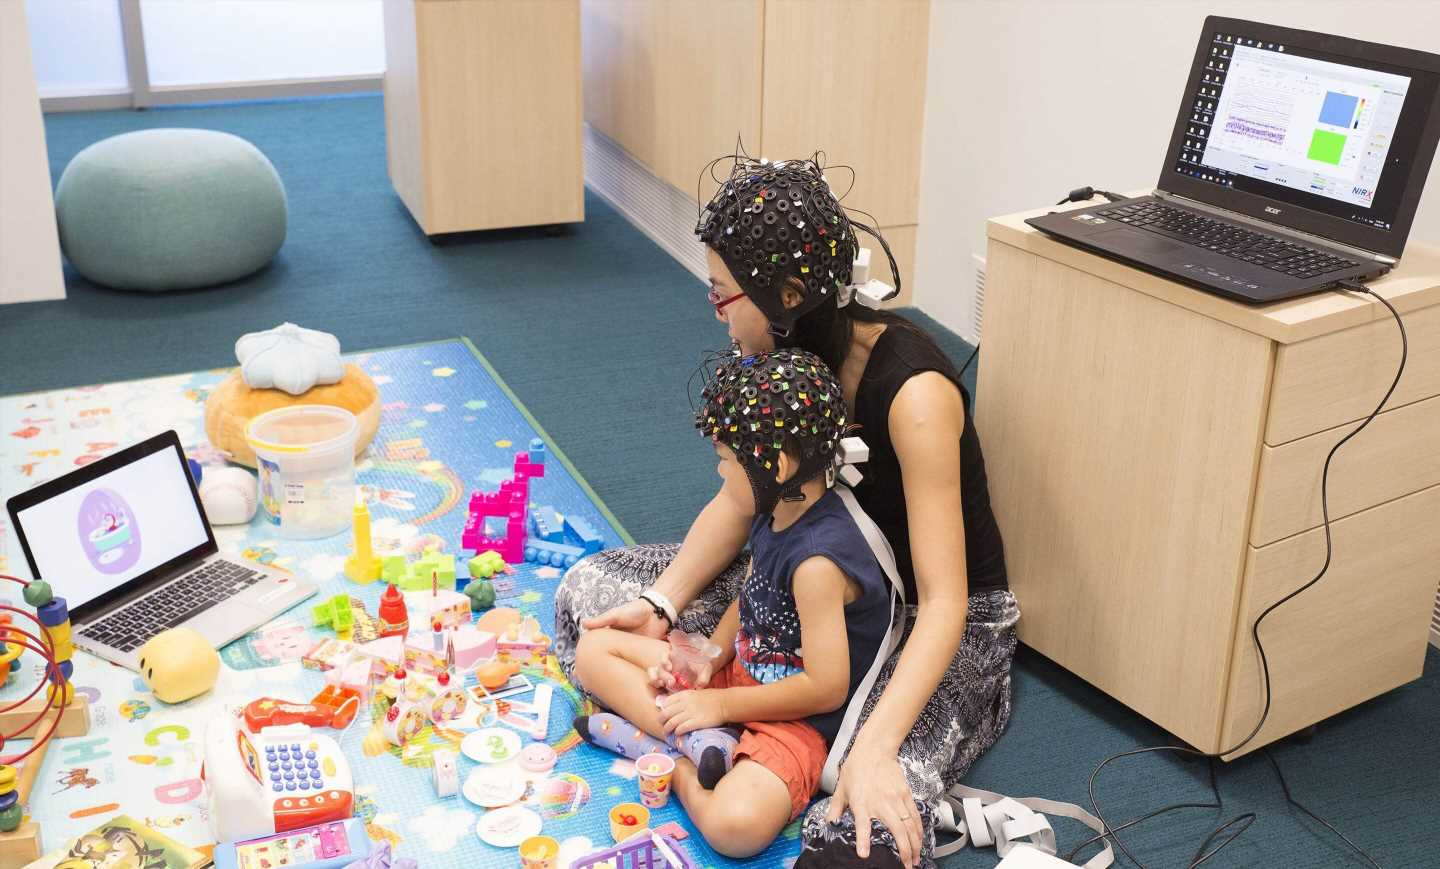 Parenting stress may affect mother and child ability to tune in to each other